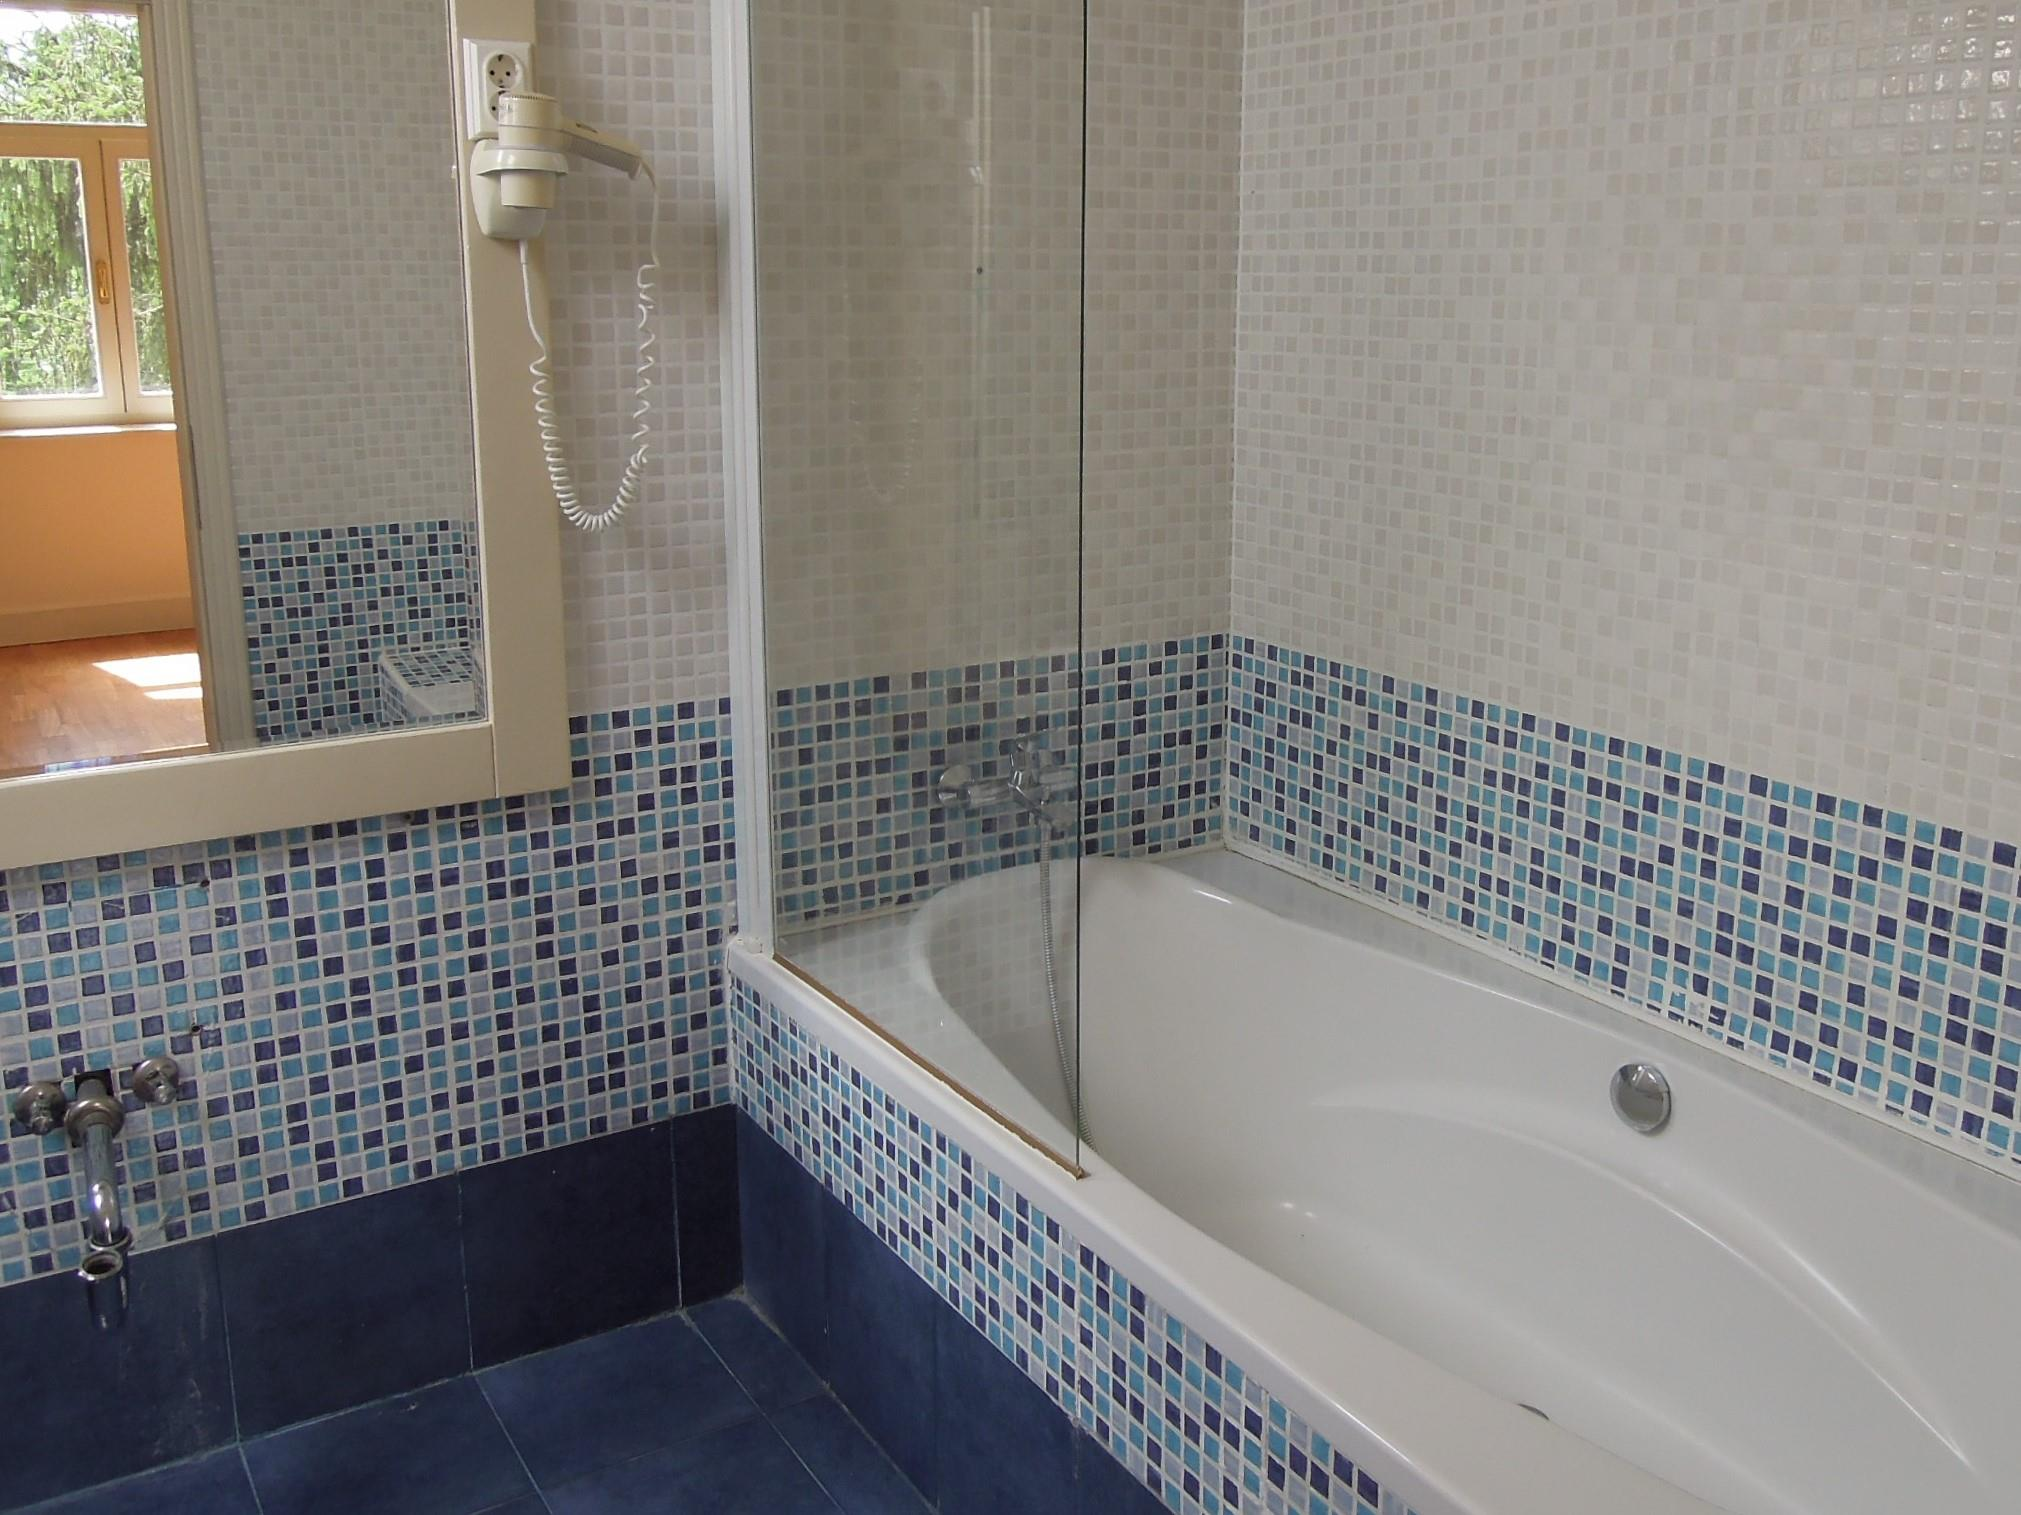 apartmenthosue with 8 apartments, swimming pool, fitnessroom is for sale in Budapest 2nd district